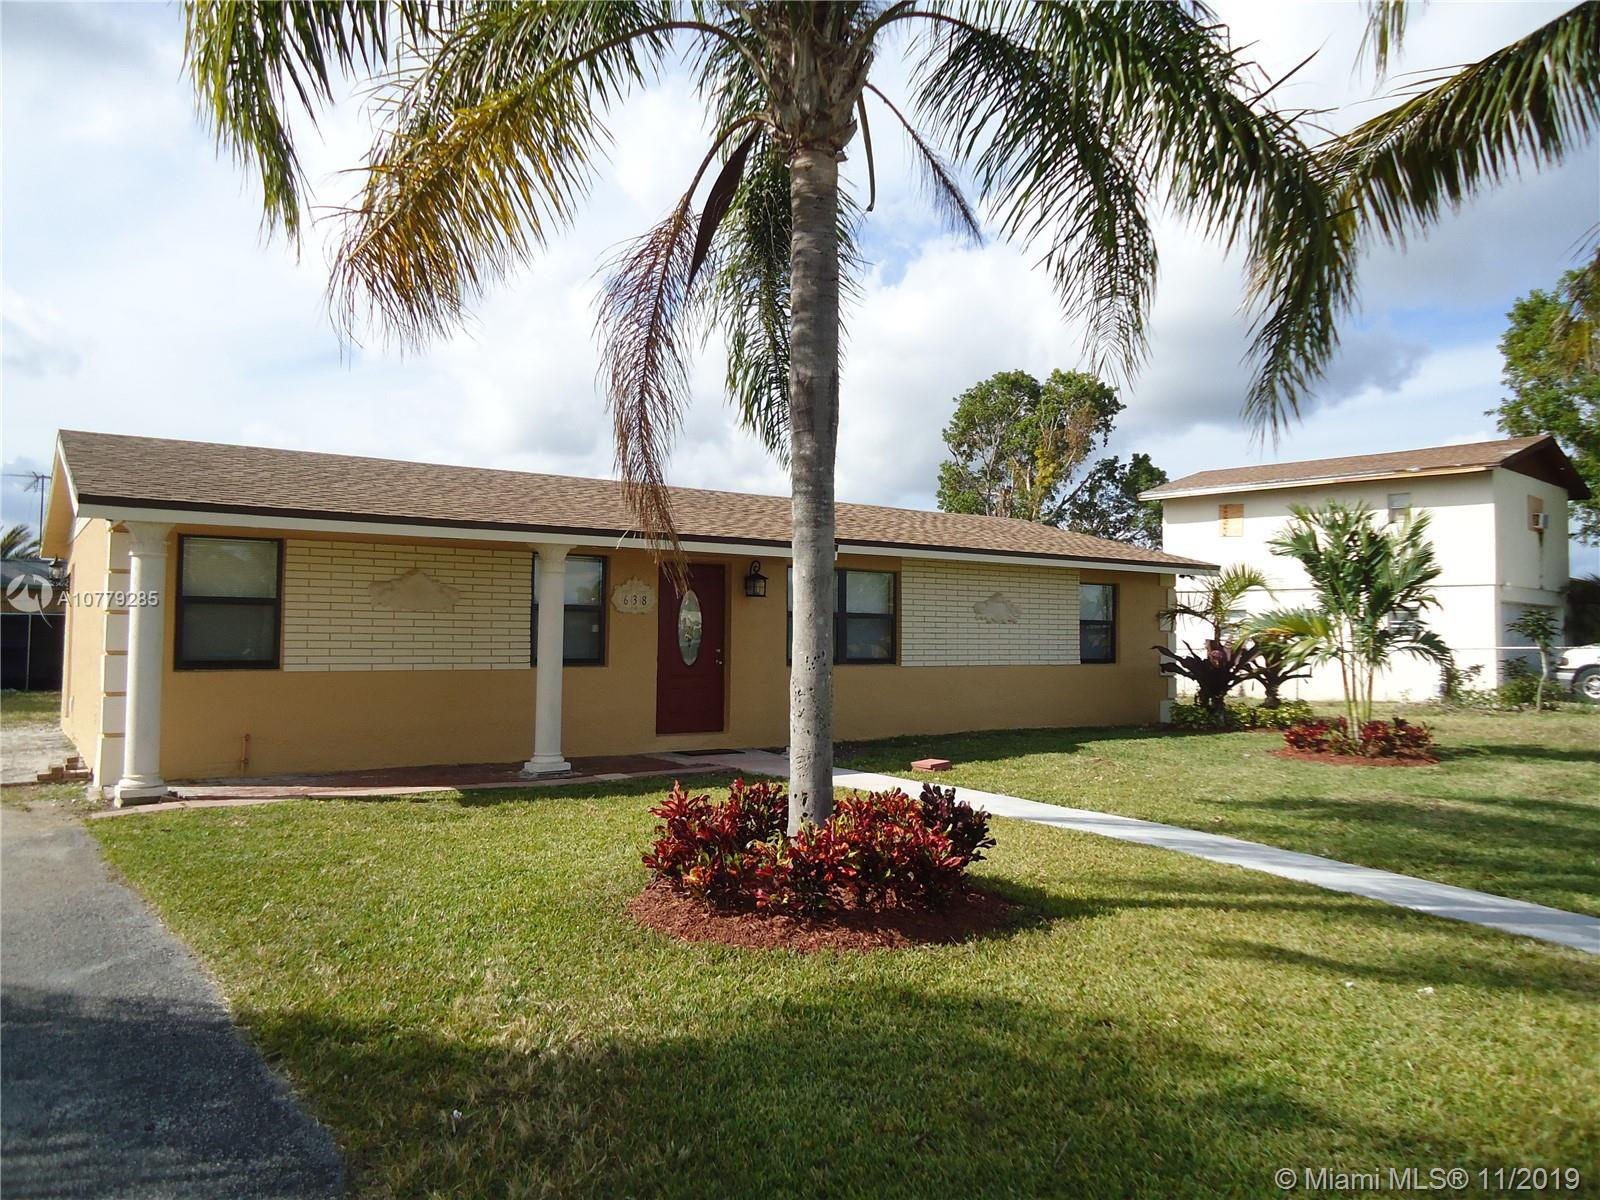 638 SW 16th Ter, Homestead, FL 33030 - Homestead, FL real estate listing